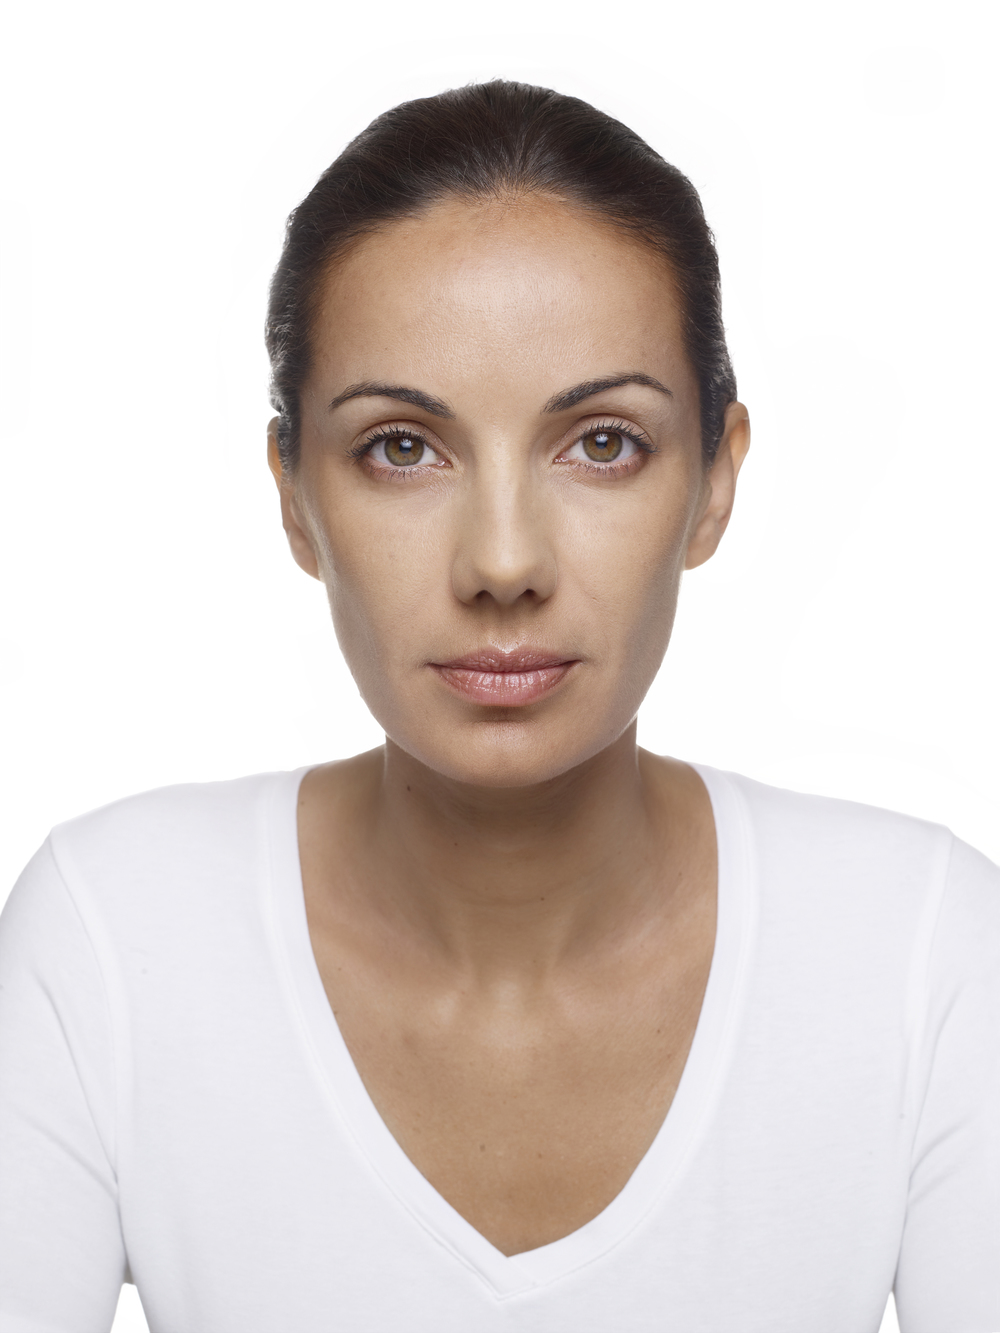 Full-face-01-after-Dr-Imhof-Germany.jpg